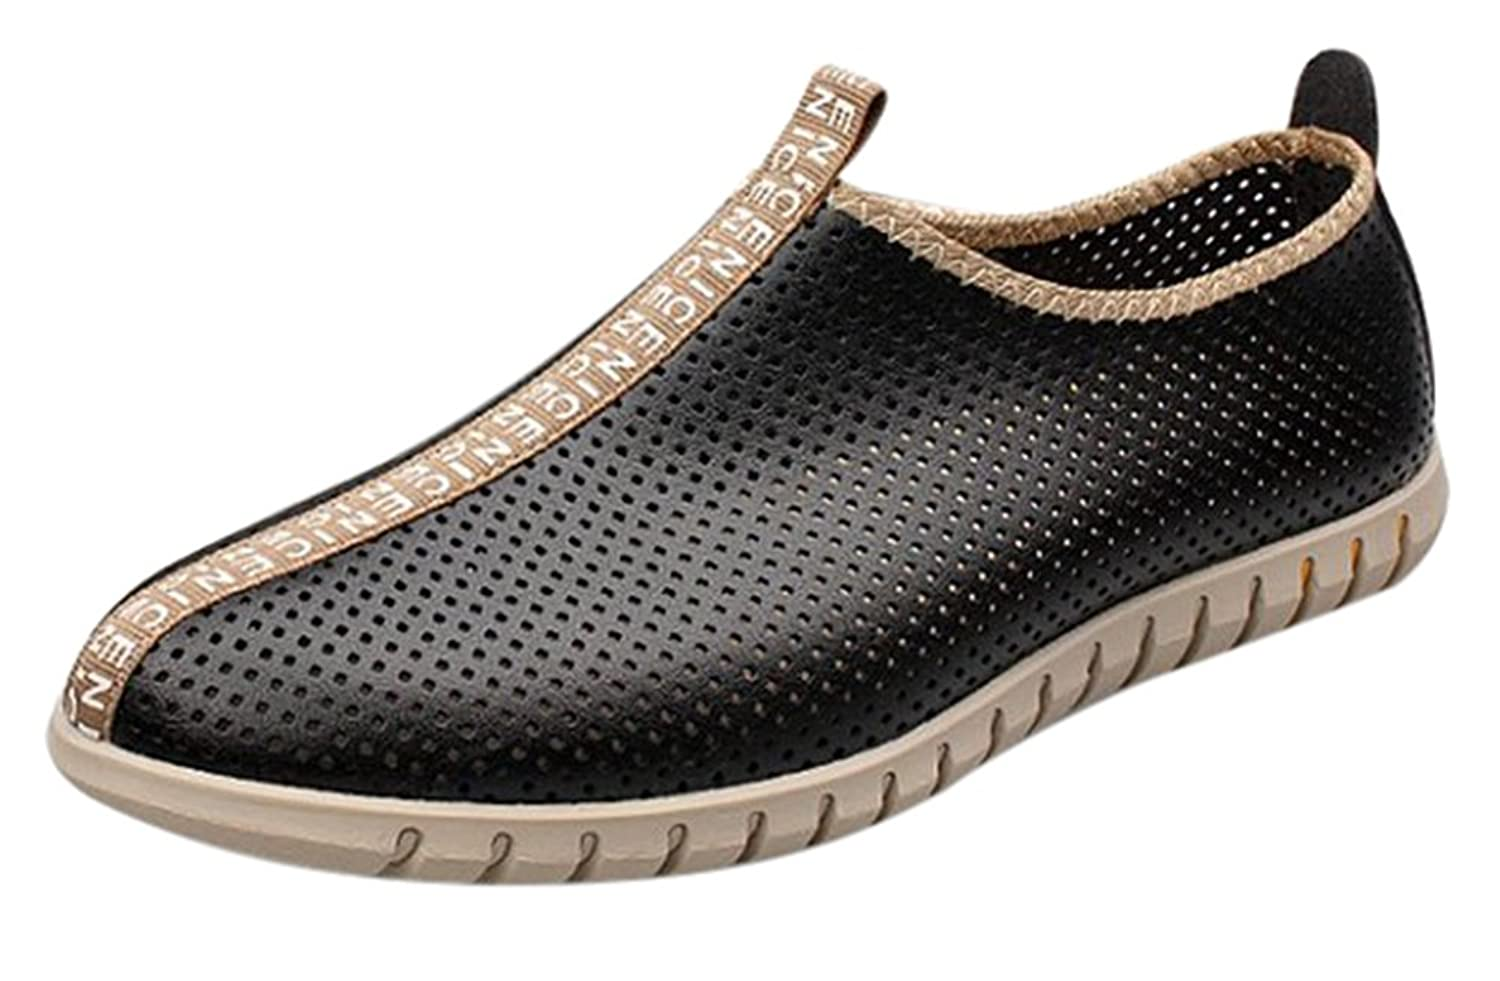 Fansela(TM) Men's Hollow Breathable Perforated PU LeatherBeach Shoes Size 7.5 Black